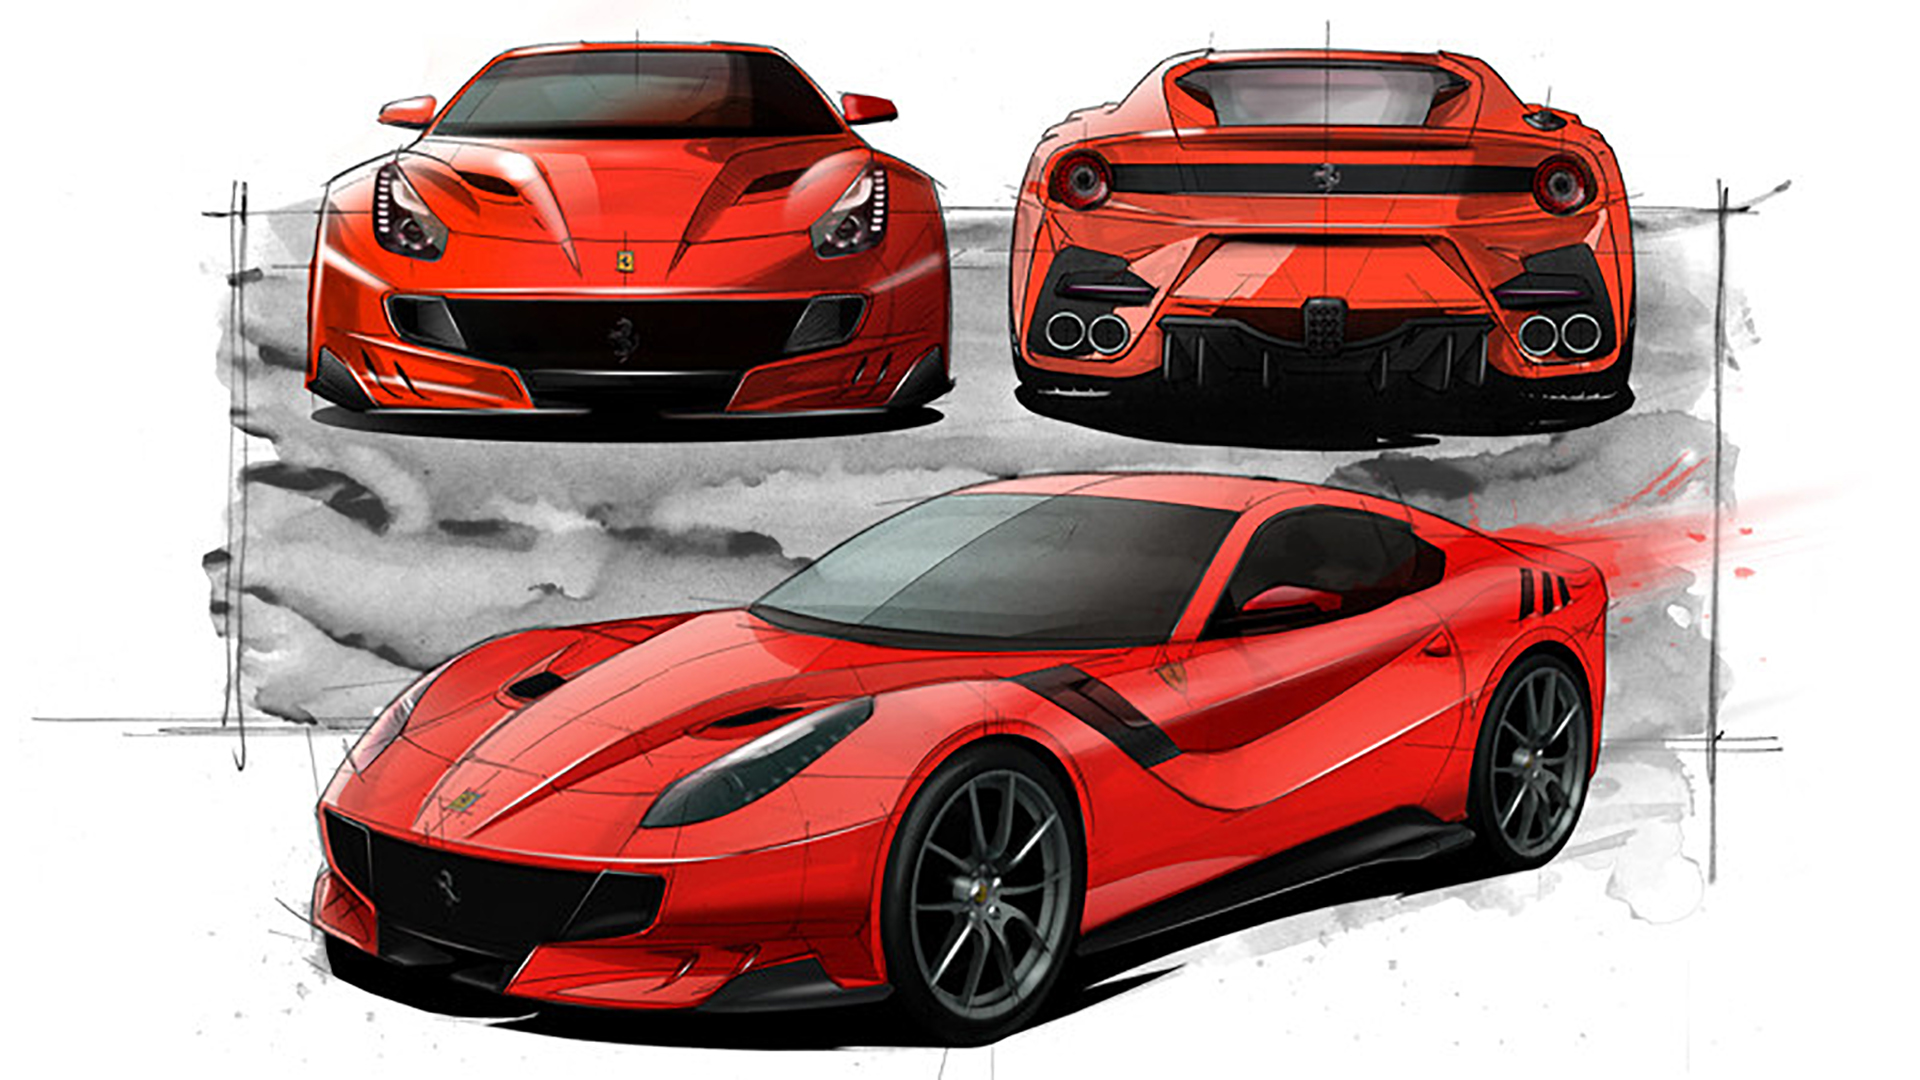 Ferrari F12tdf - design sketch